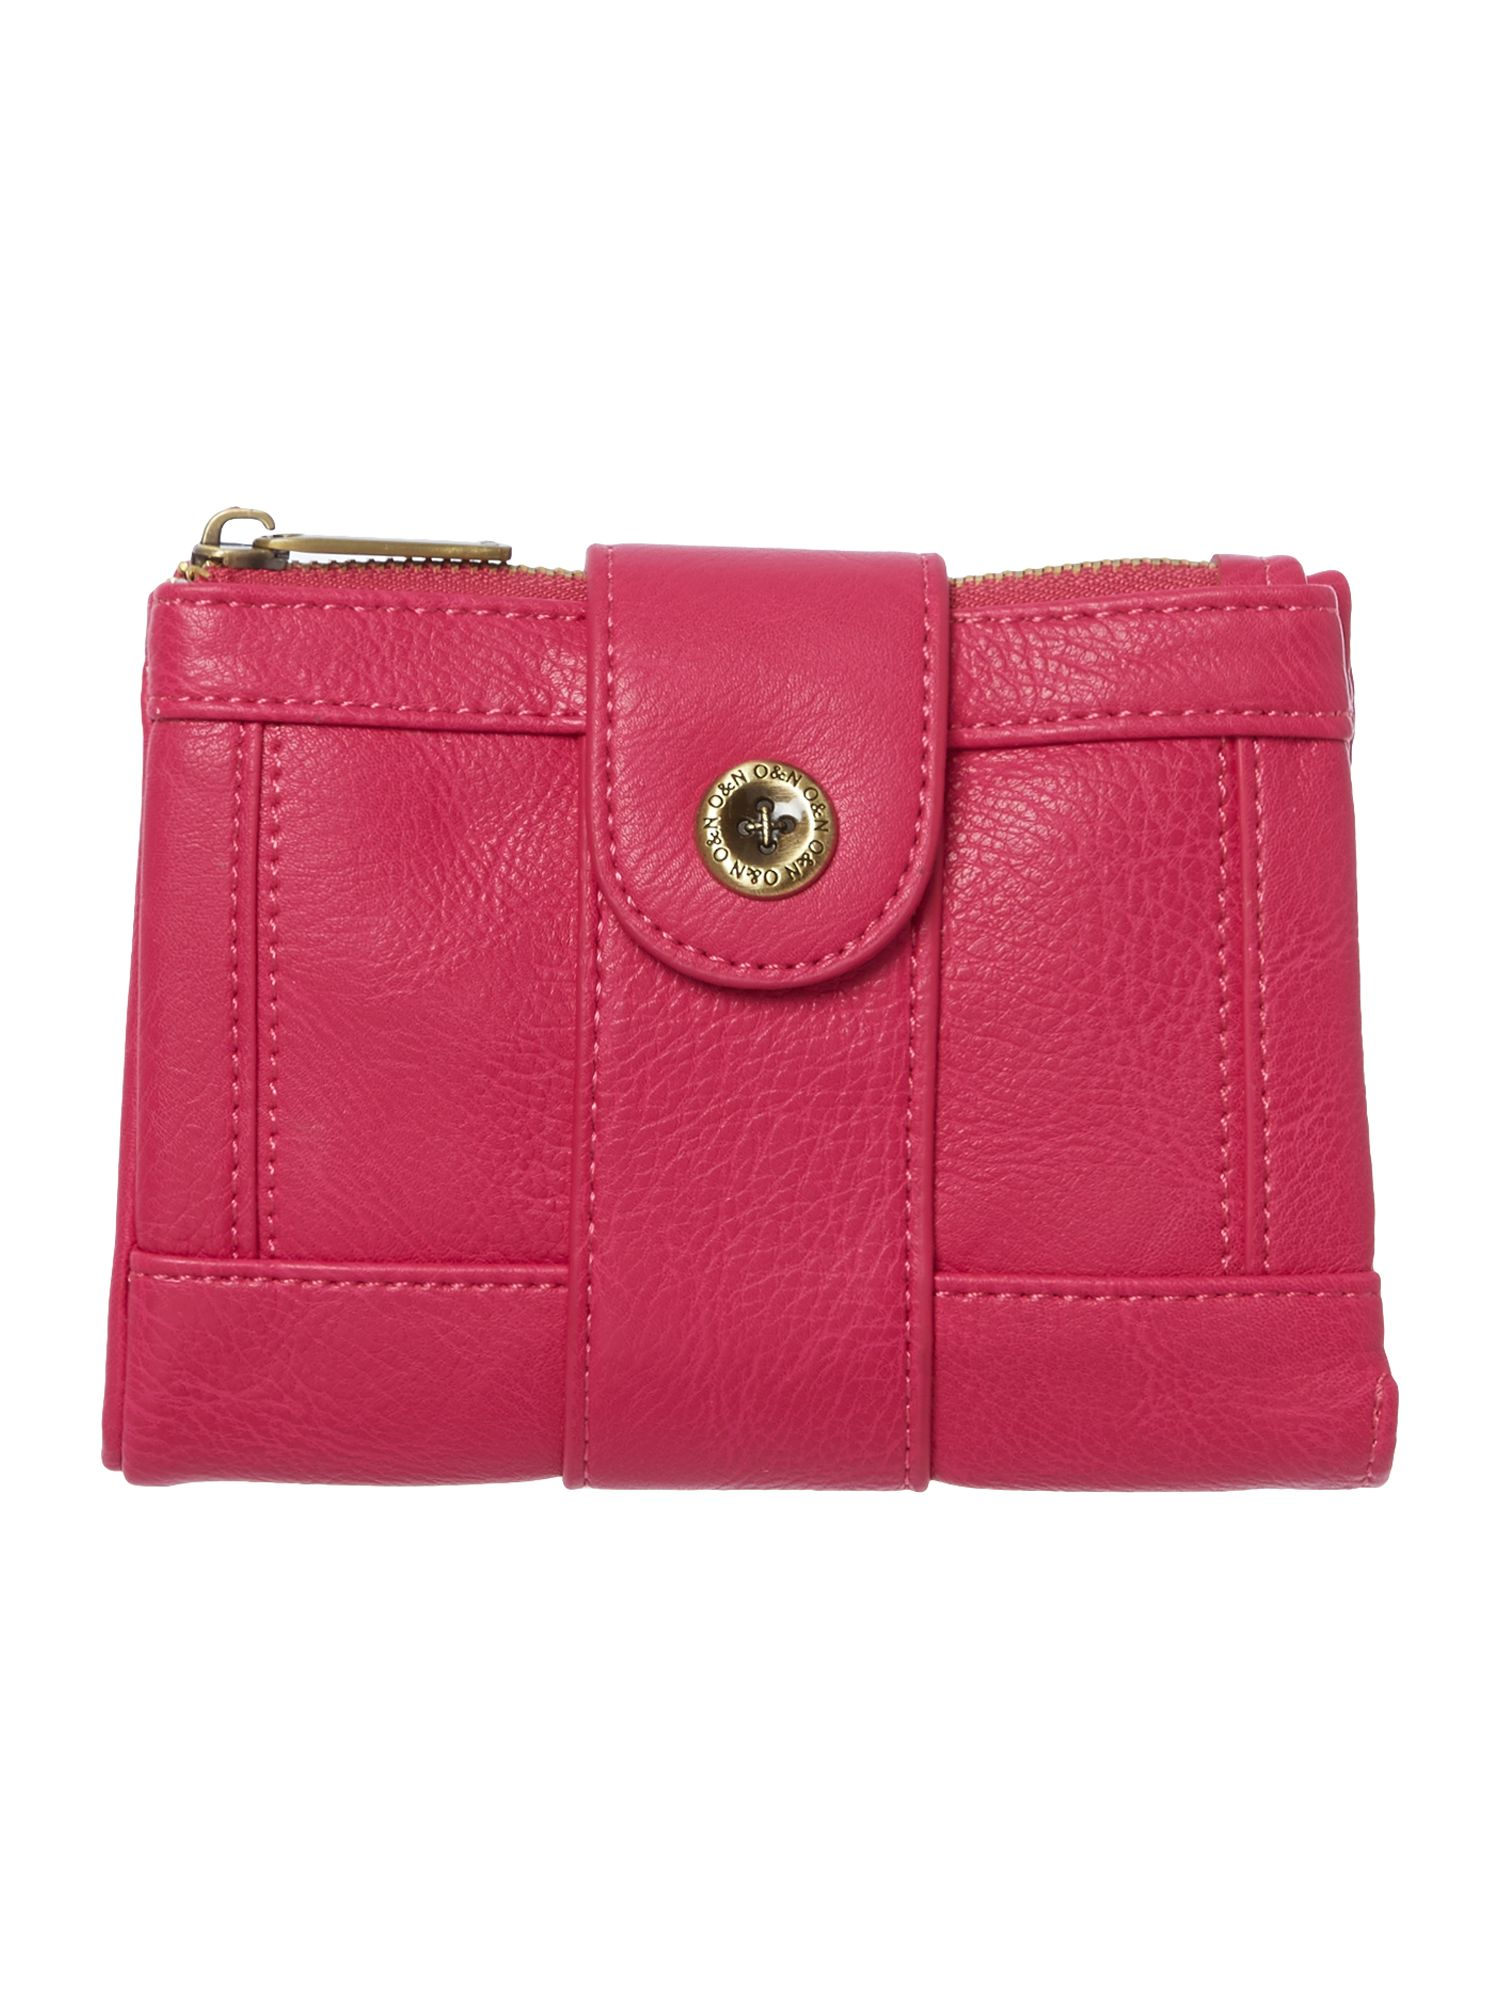 Mick small pink flap over purse